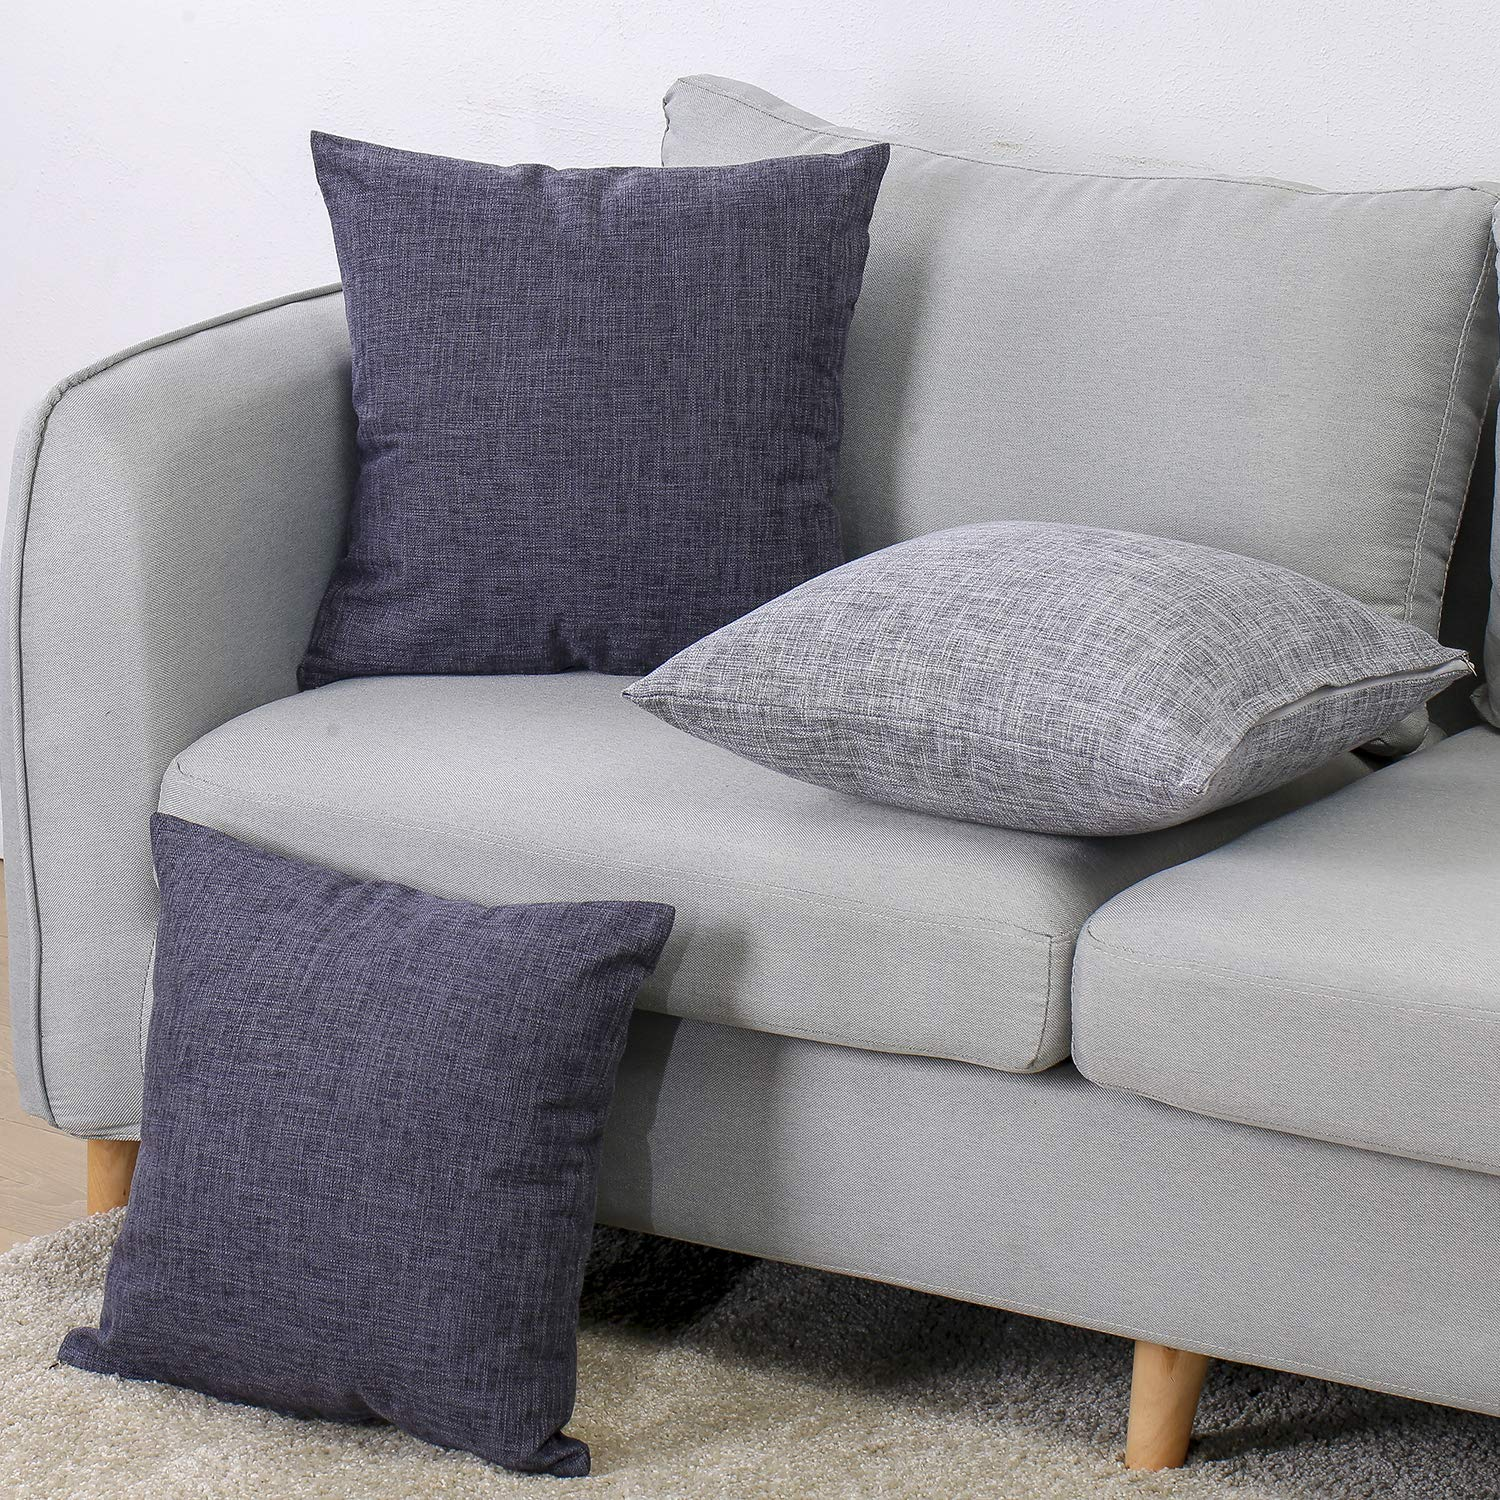 Zishenge-1 Grey Pack of 2 Cushion Cases Faux Linen Look Throw Pillow Cover with Invisible Zipper for Chairs 18 x 18 Inch Silver Sconce No Pillow Insert